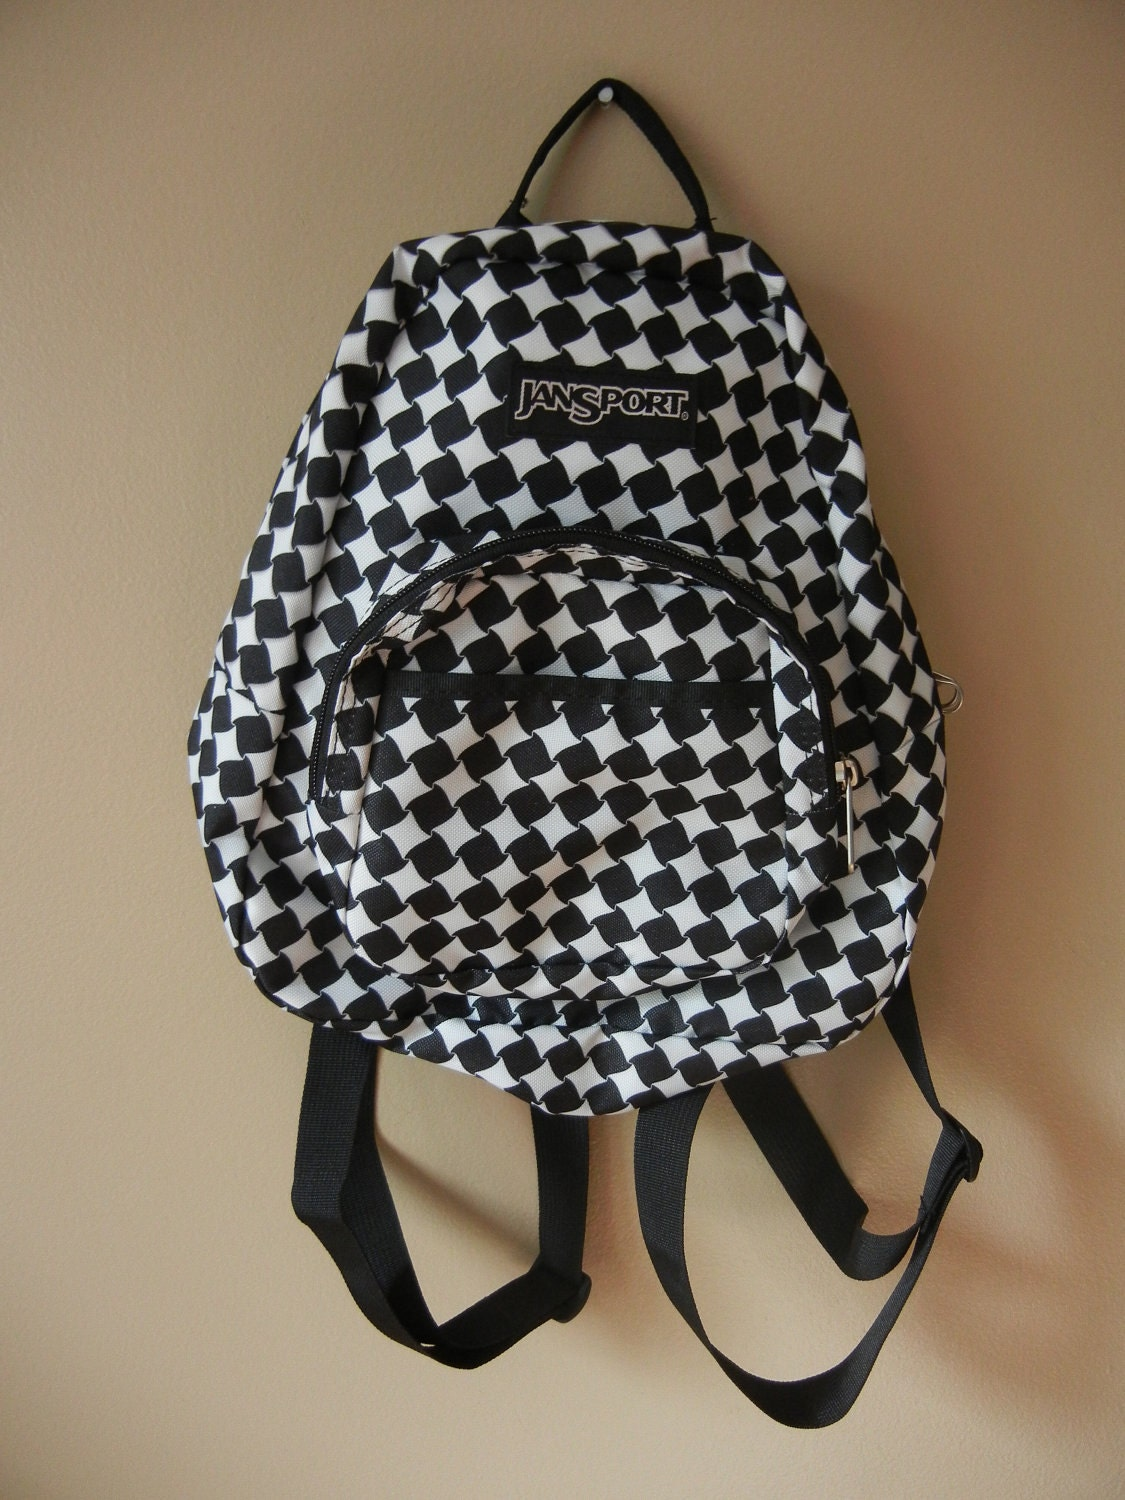 Jansport Mini Backpack Black and White Houndstooth Print